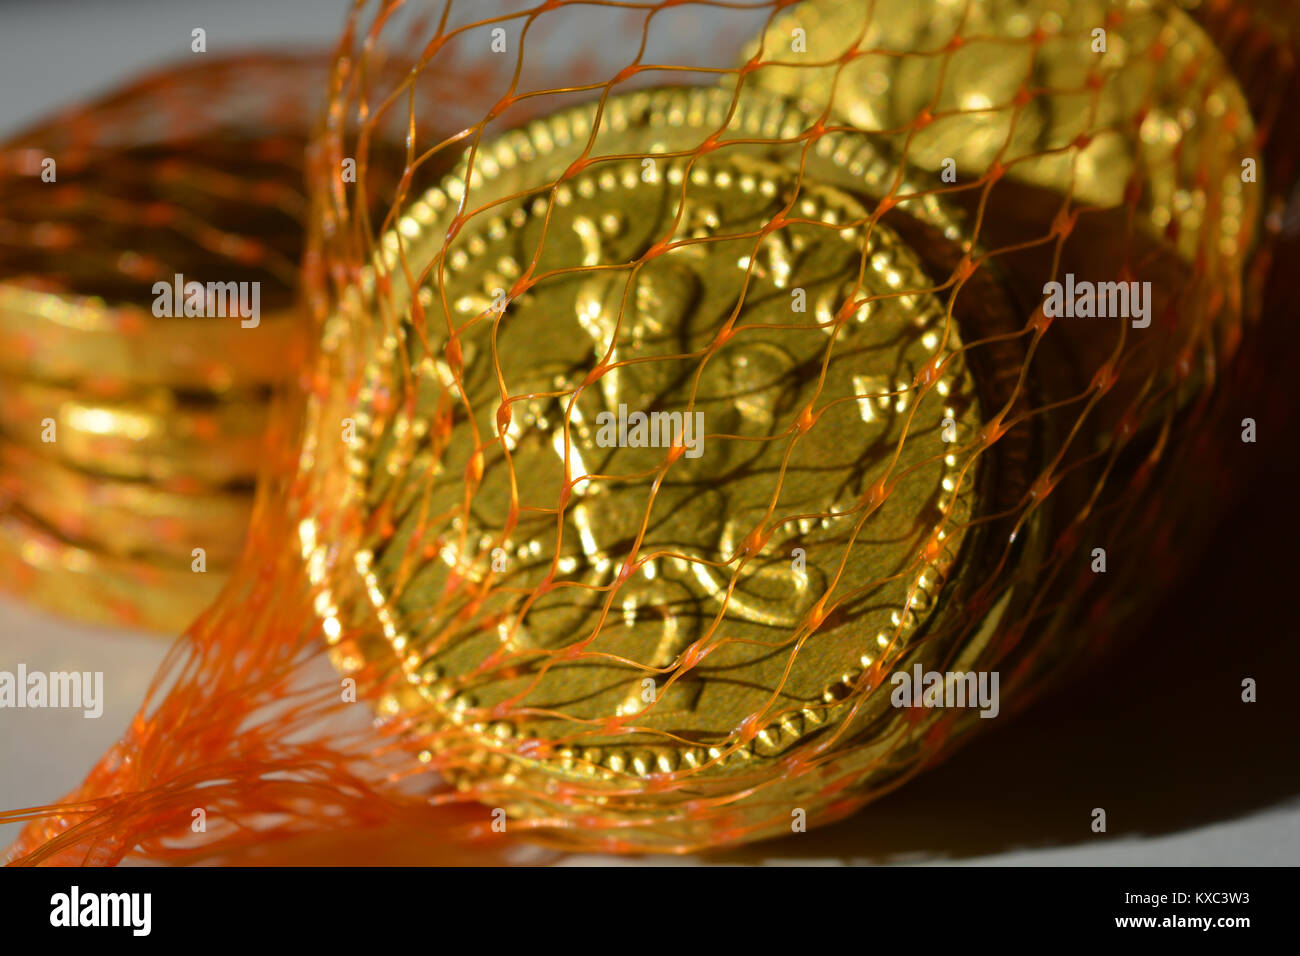 Chocolate money stock photos chocolate money stock images alamy chocolate coins in a net bag a traditional christmas gift stock image spiritdancerdesigns Image collections